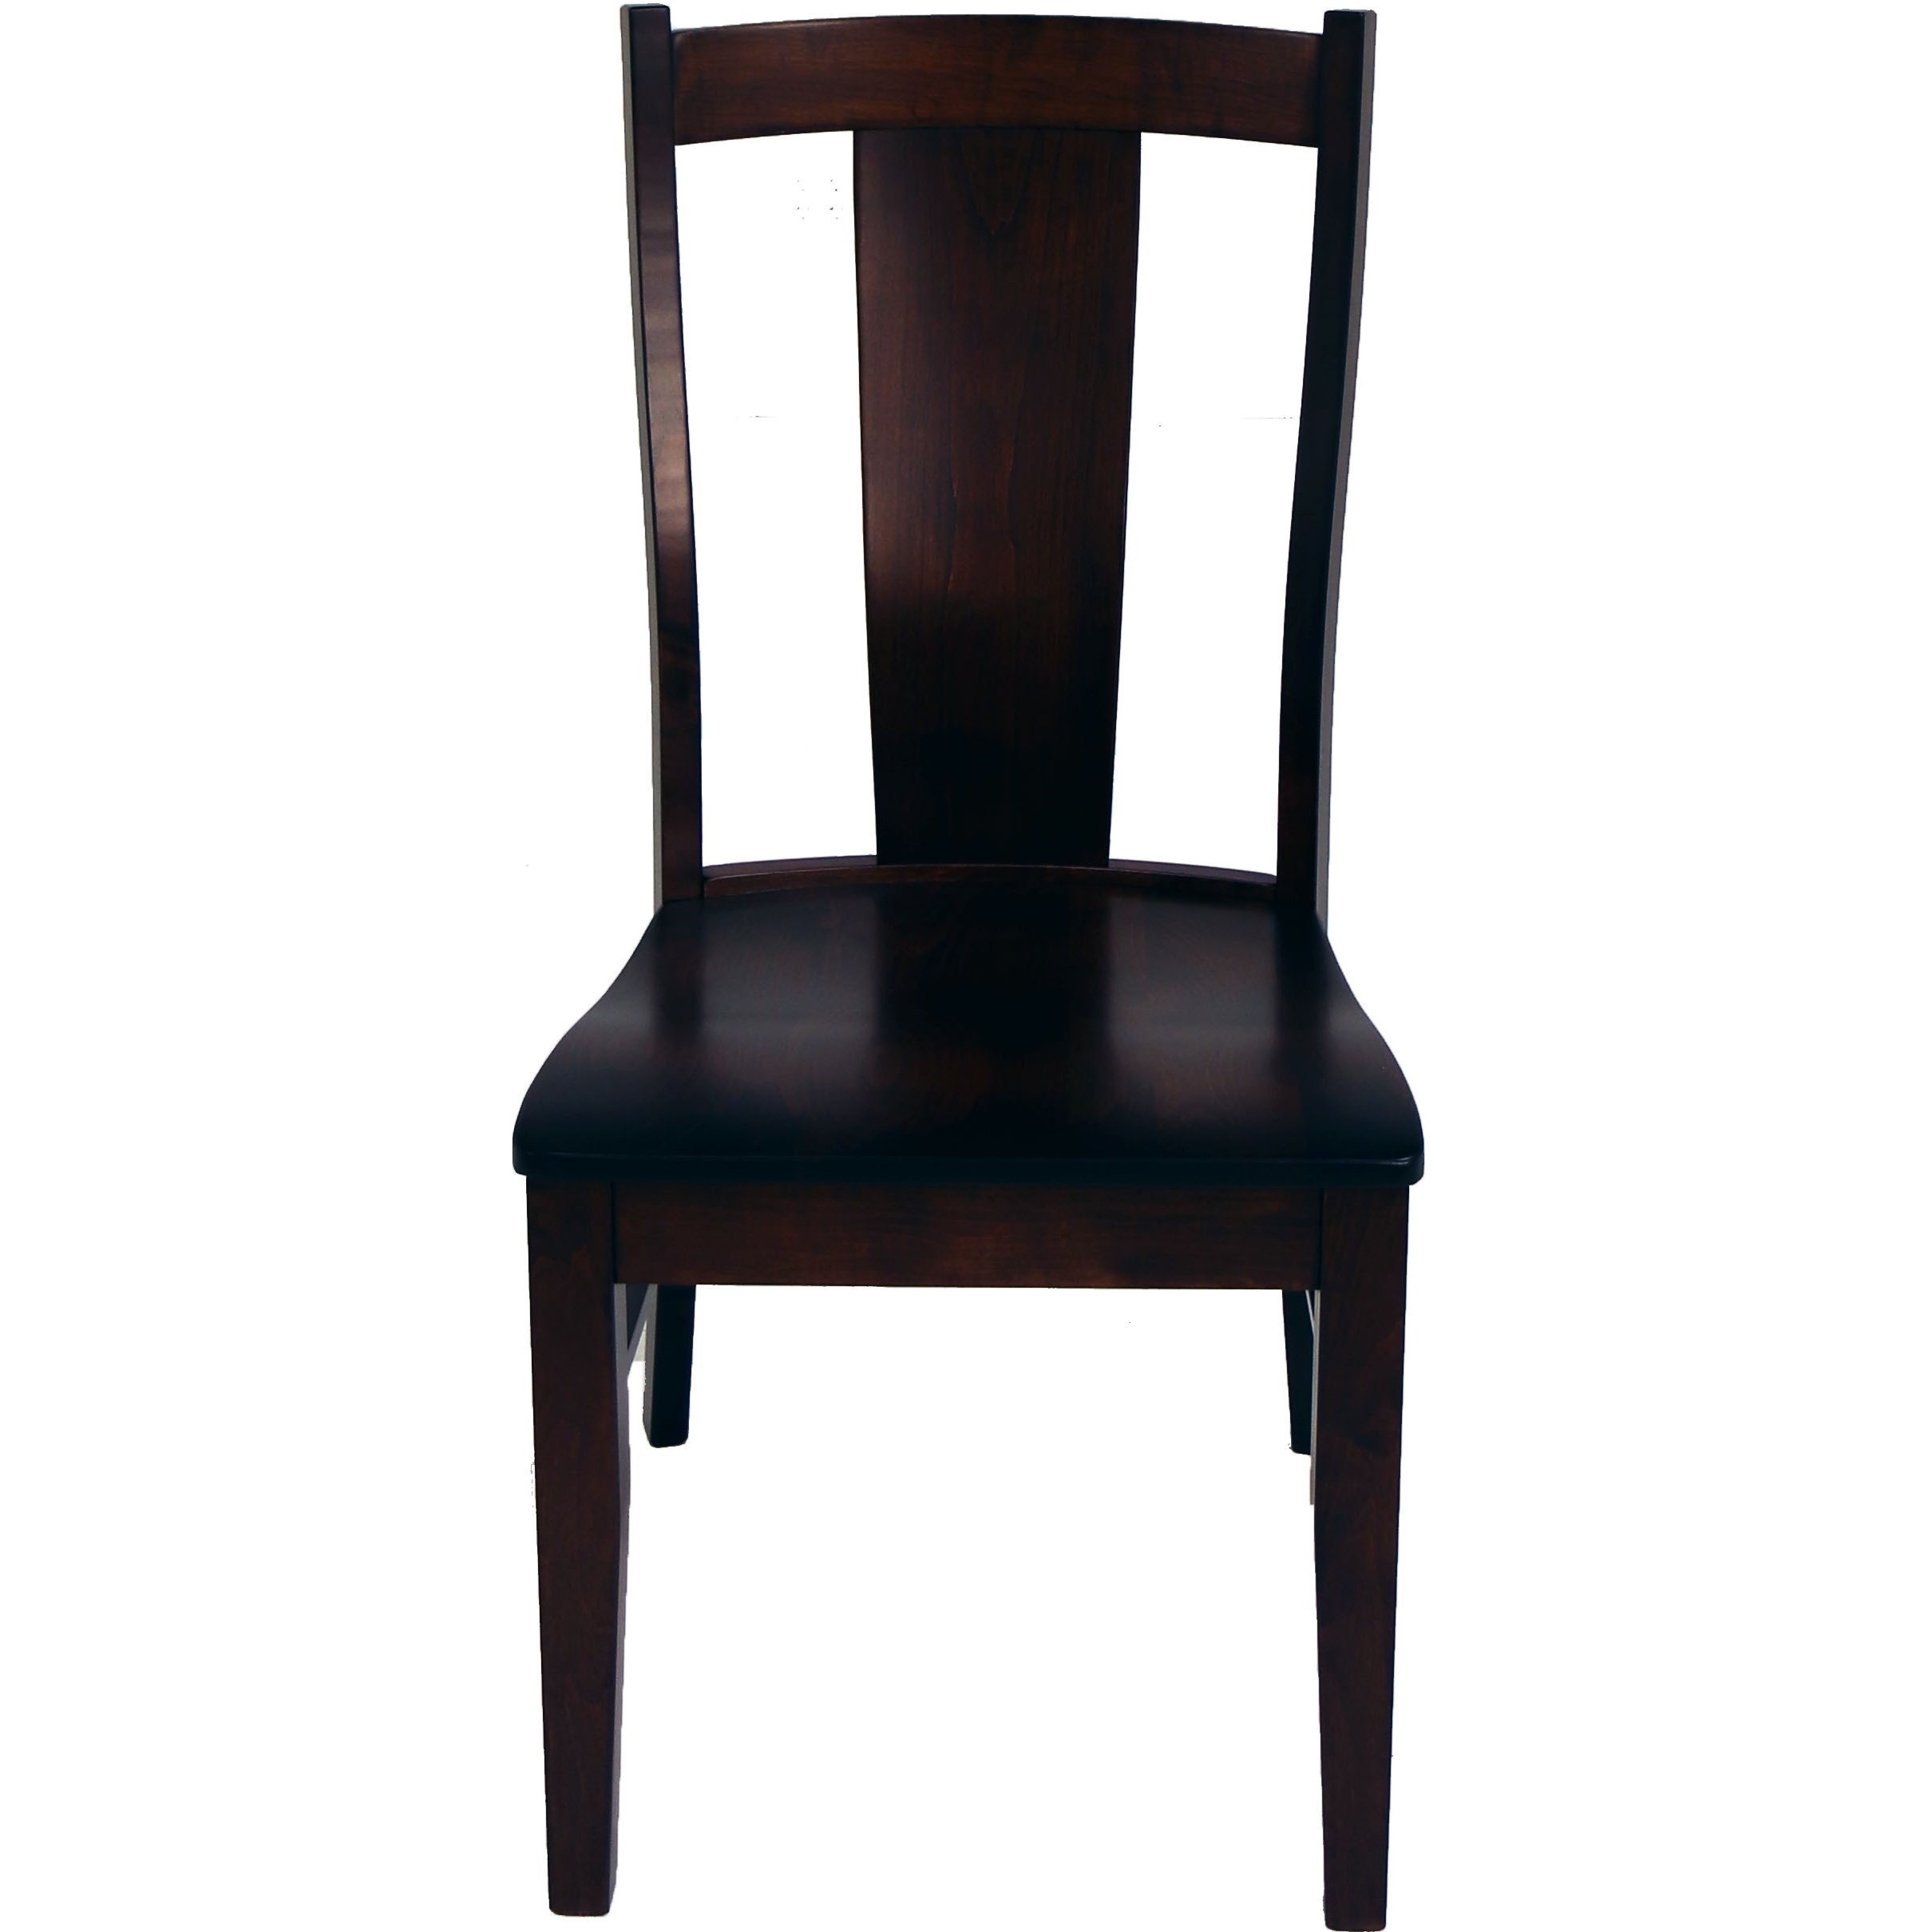 Amish Essentials Lucas Chair by Archbold Furniture at Steger's Furniture